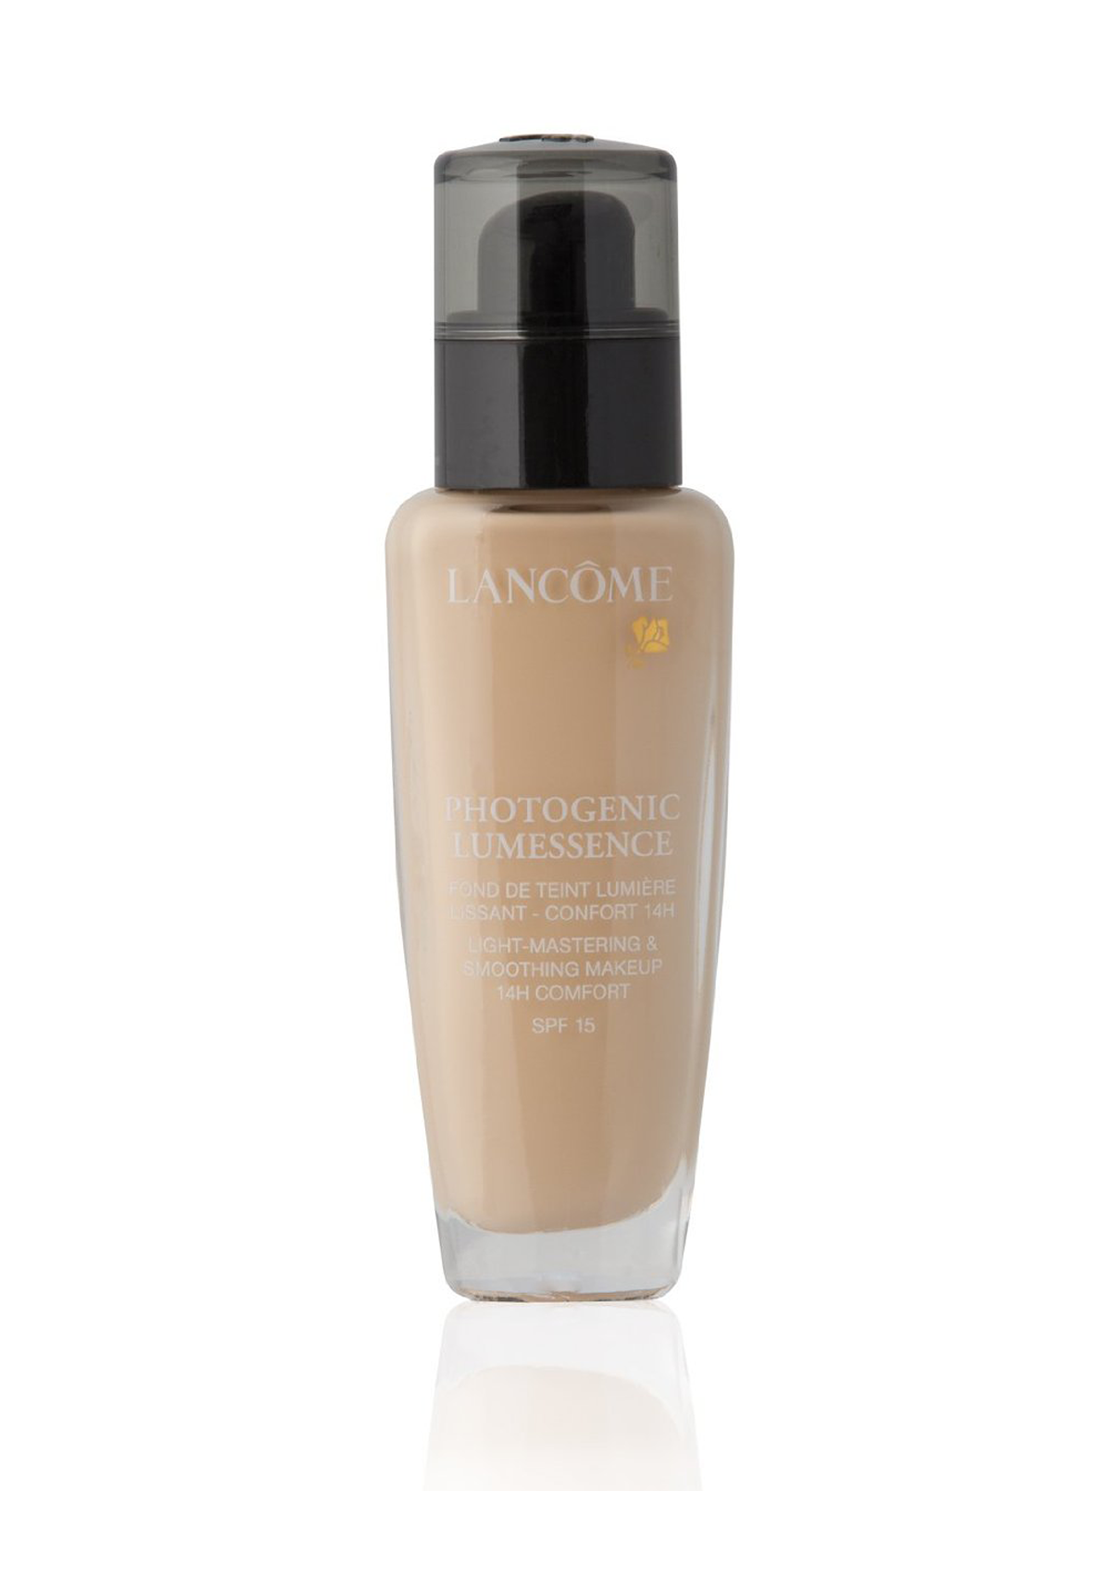 Lancome Photogenic Lumessence Liquid Foundation with SPF15, 03 Beige Diaphane